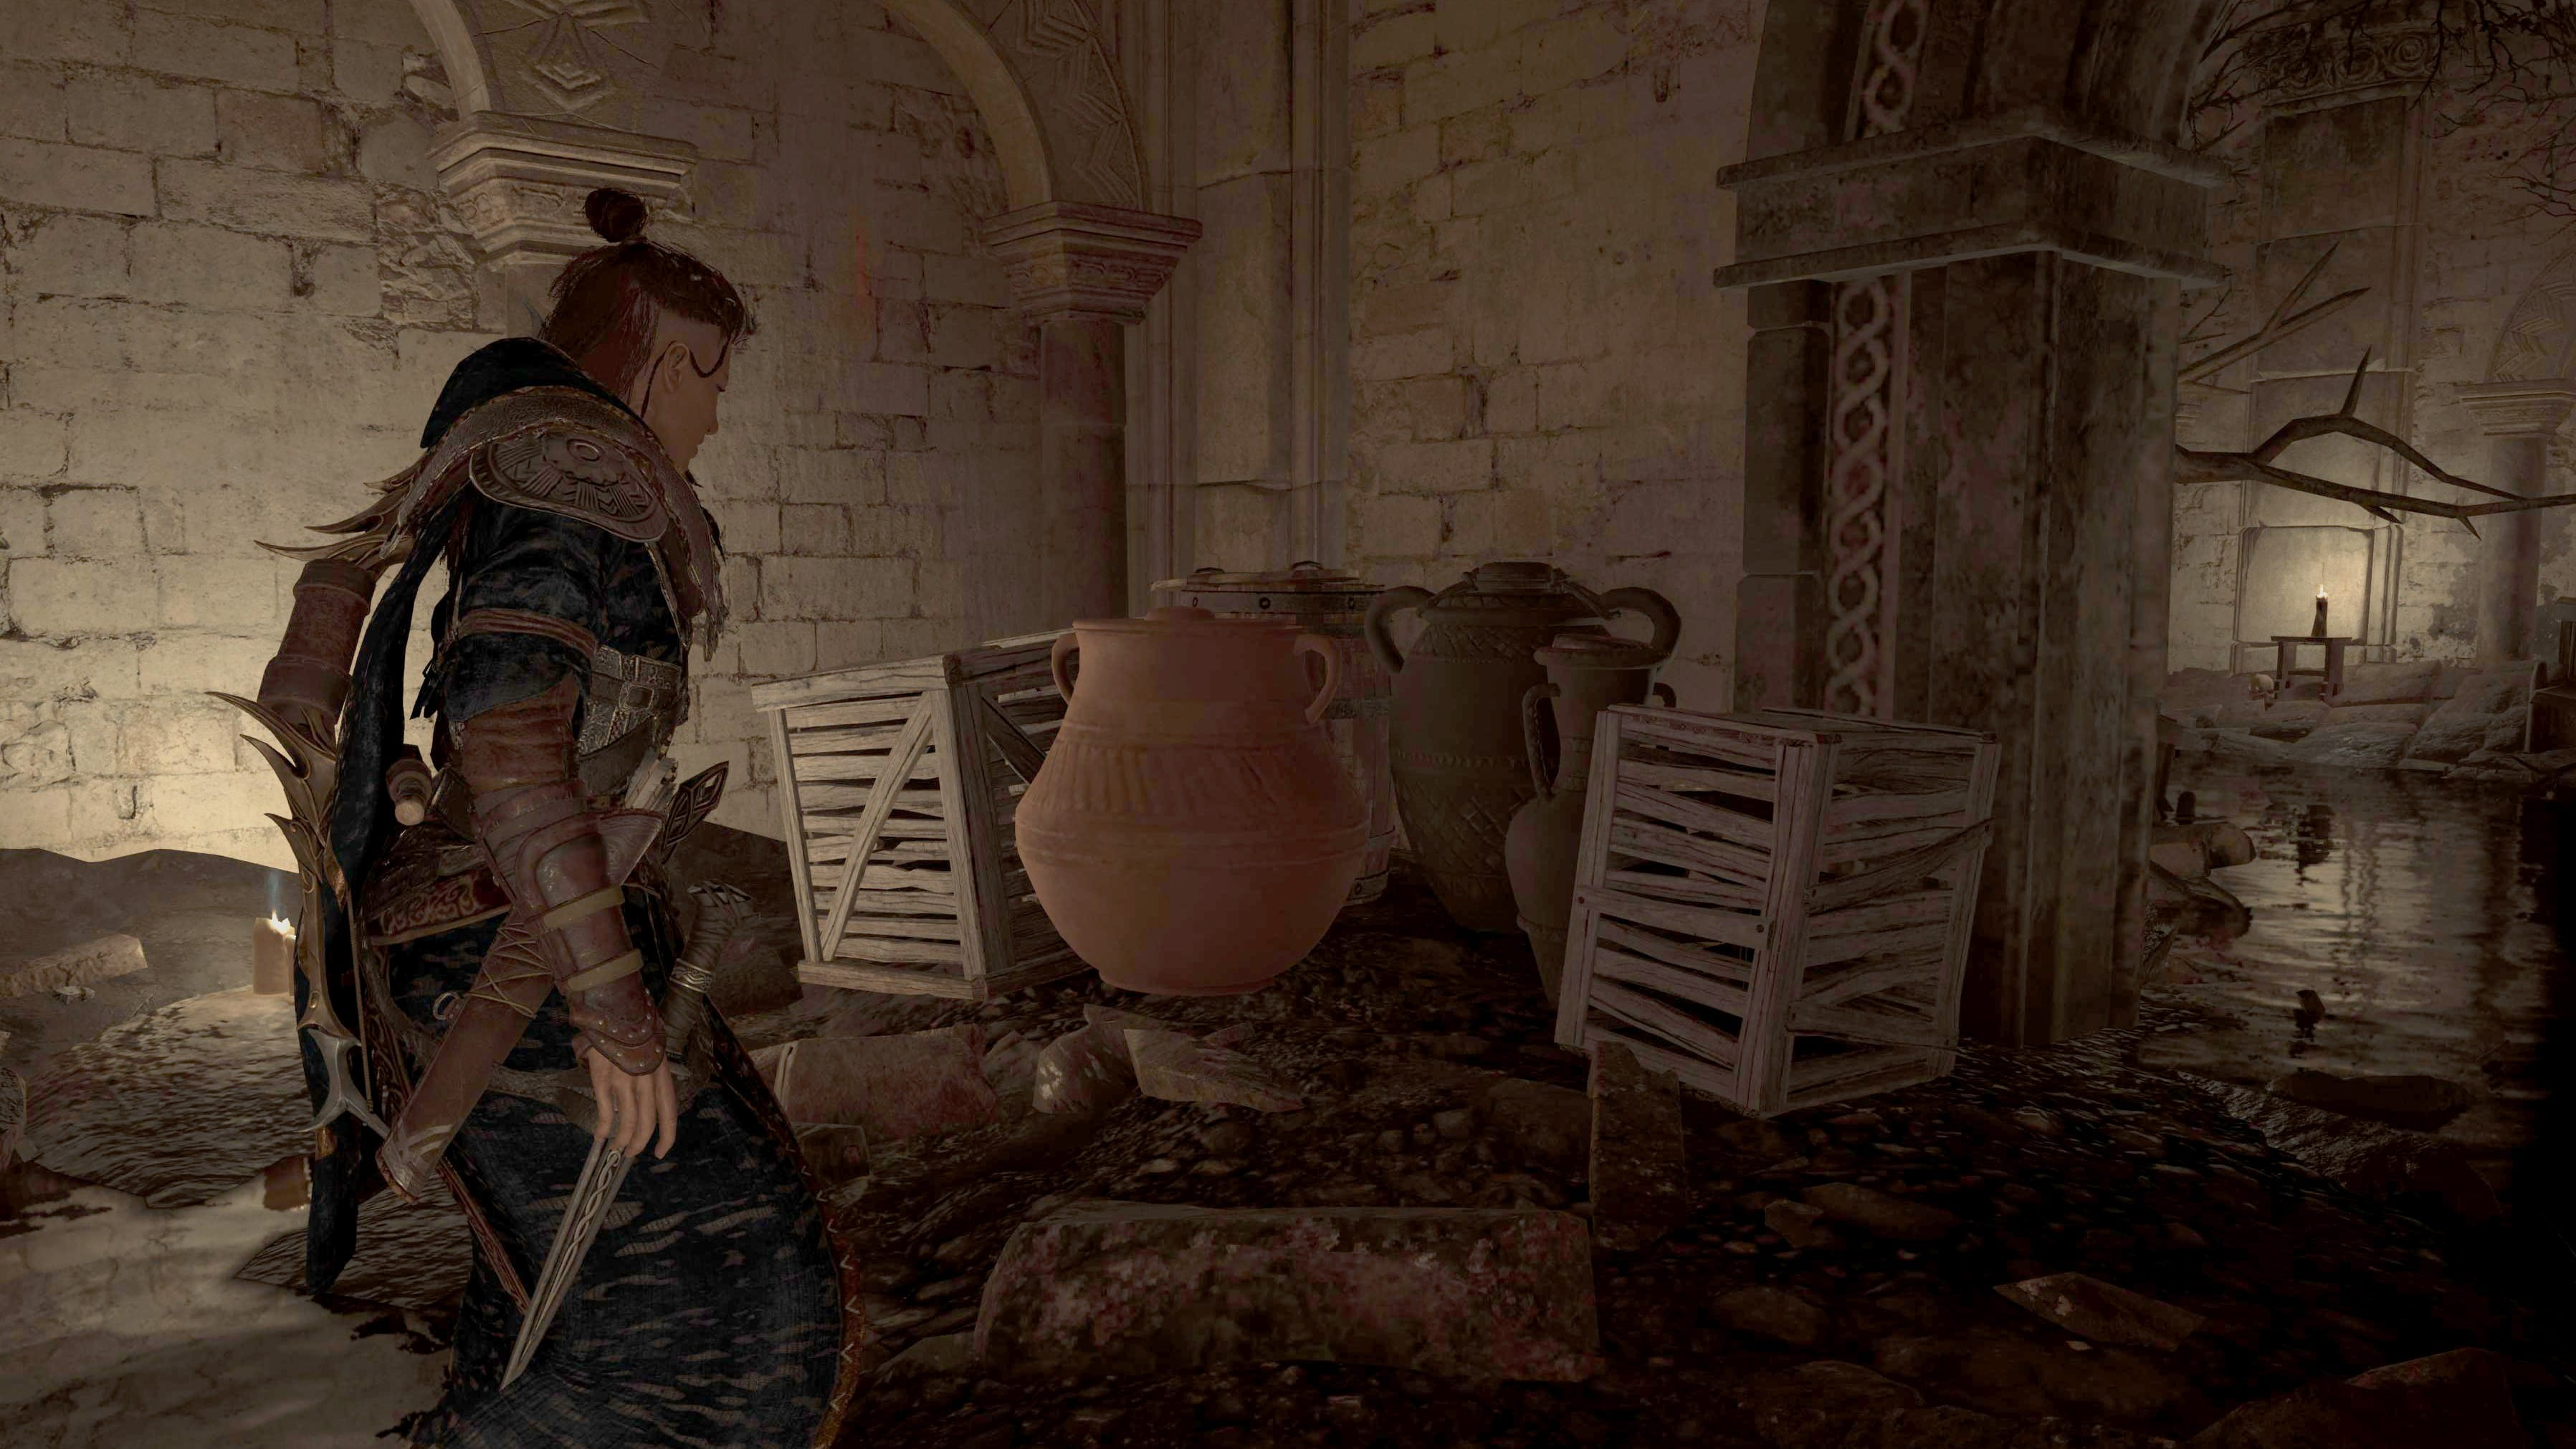 Location of the Assassin's Creed Valhalla Snake